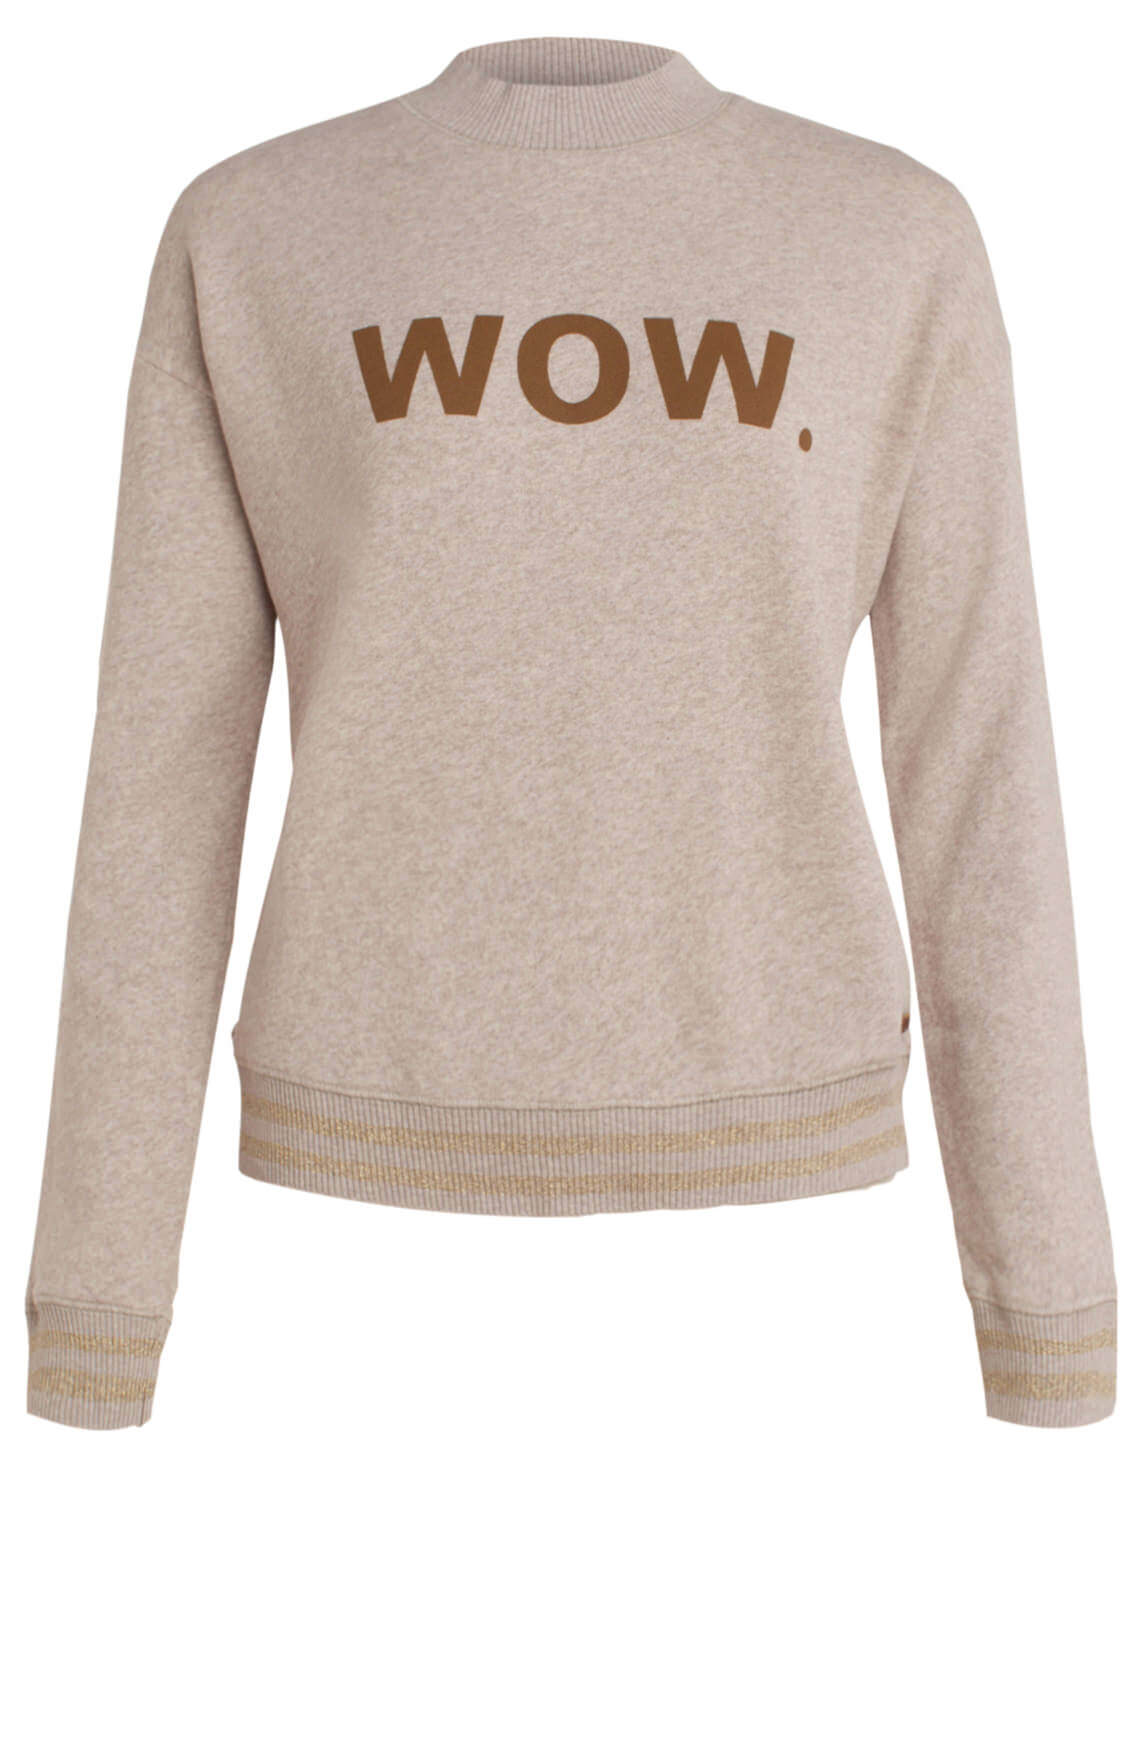 Moscow Dames Sweater Wow. Bruin